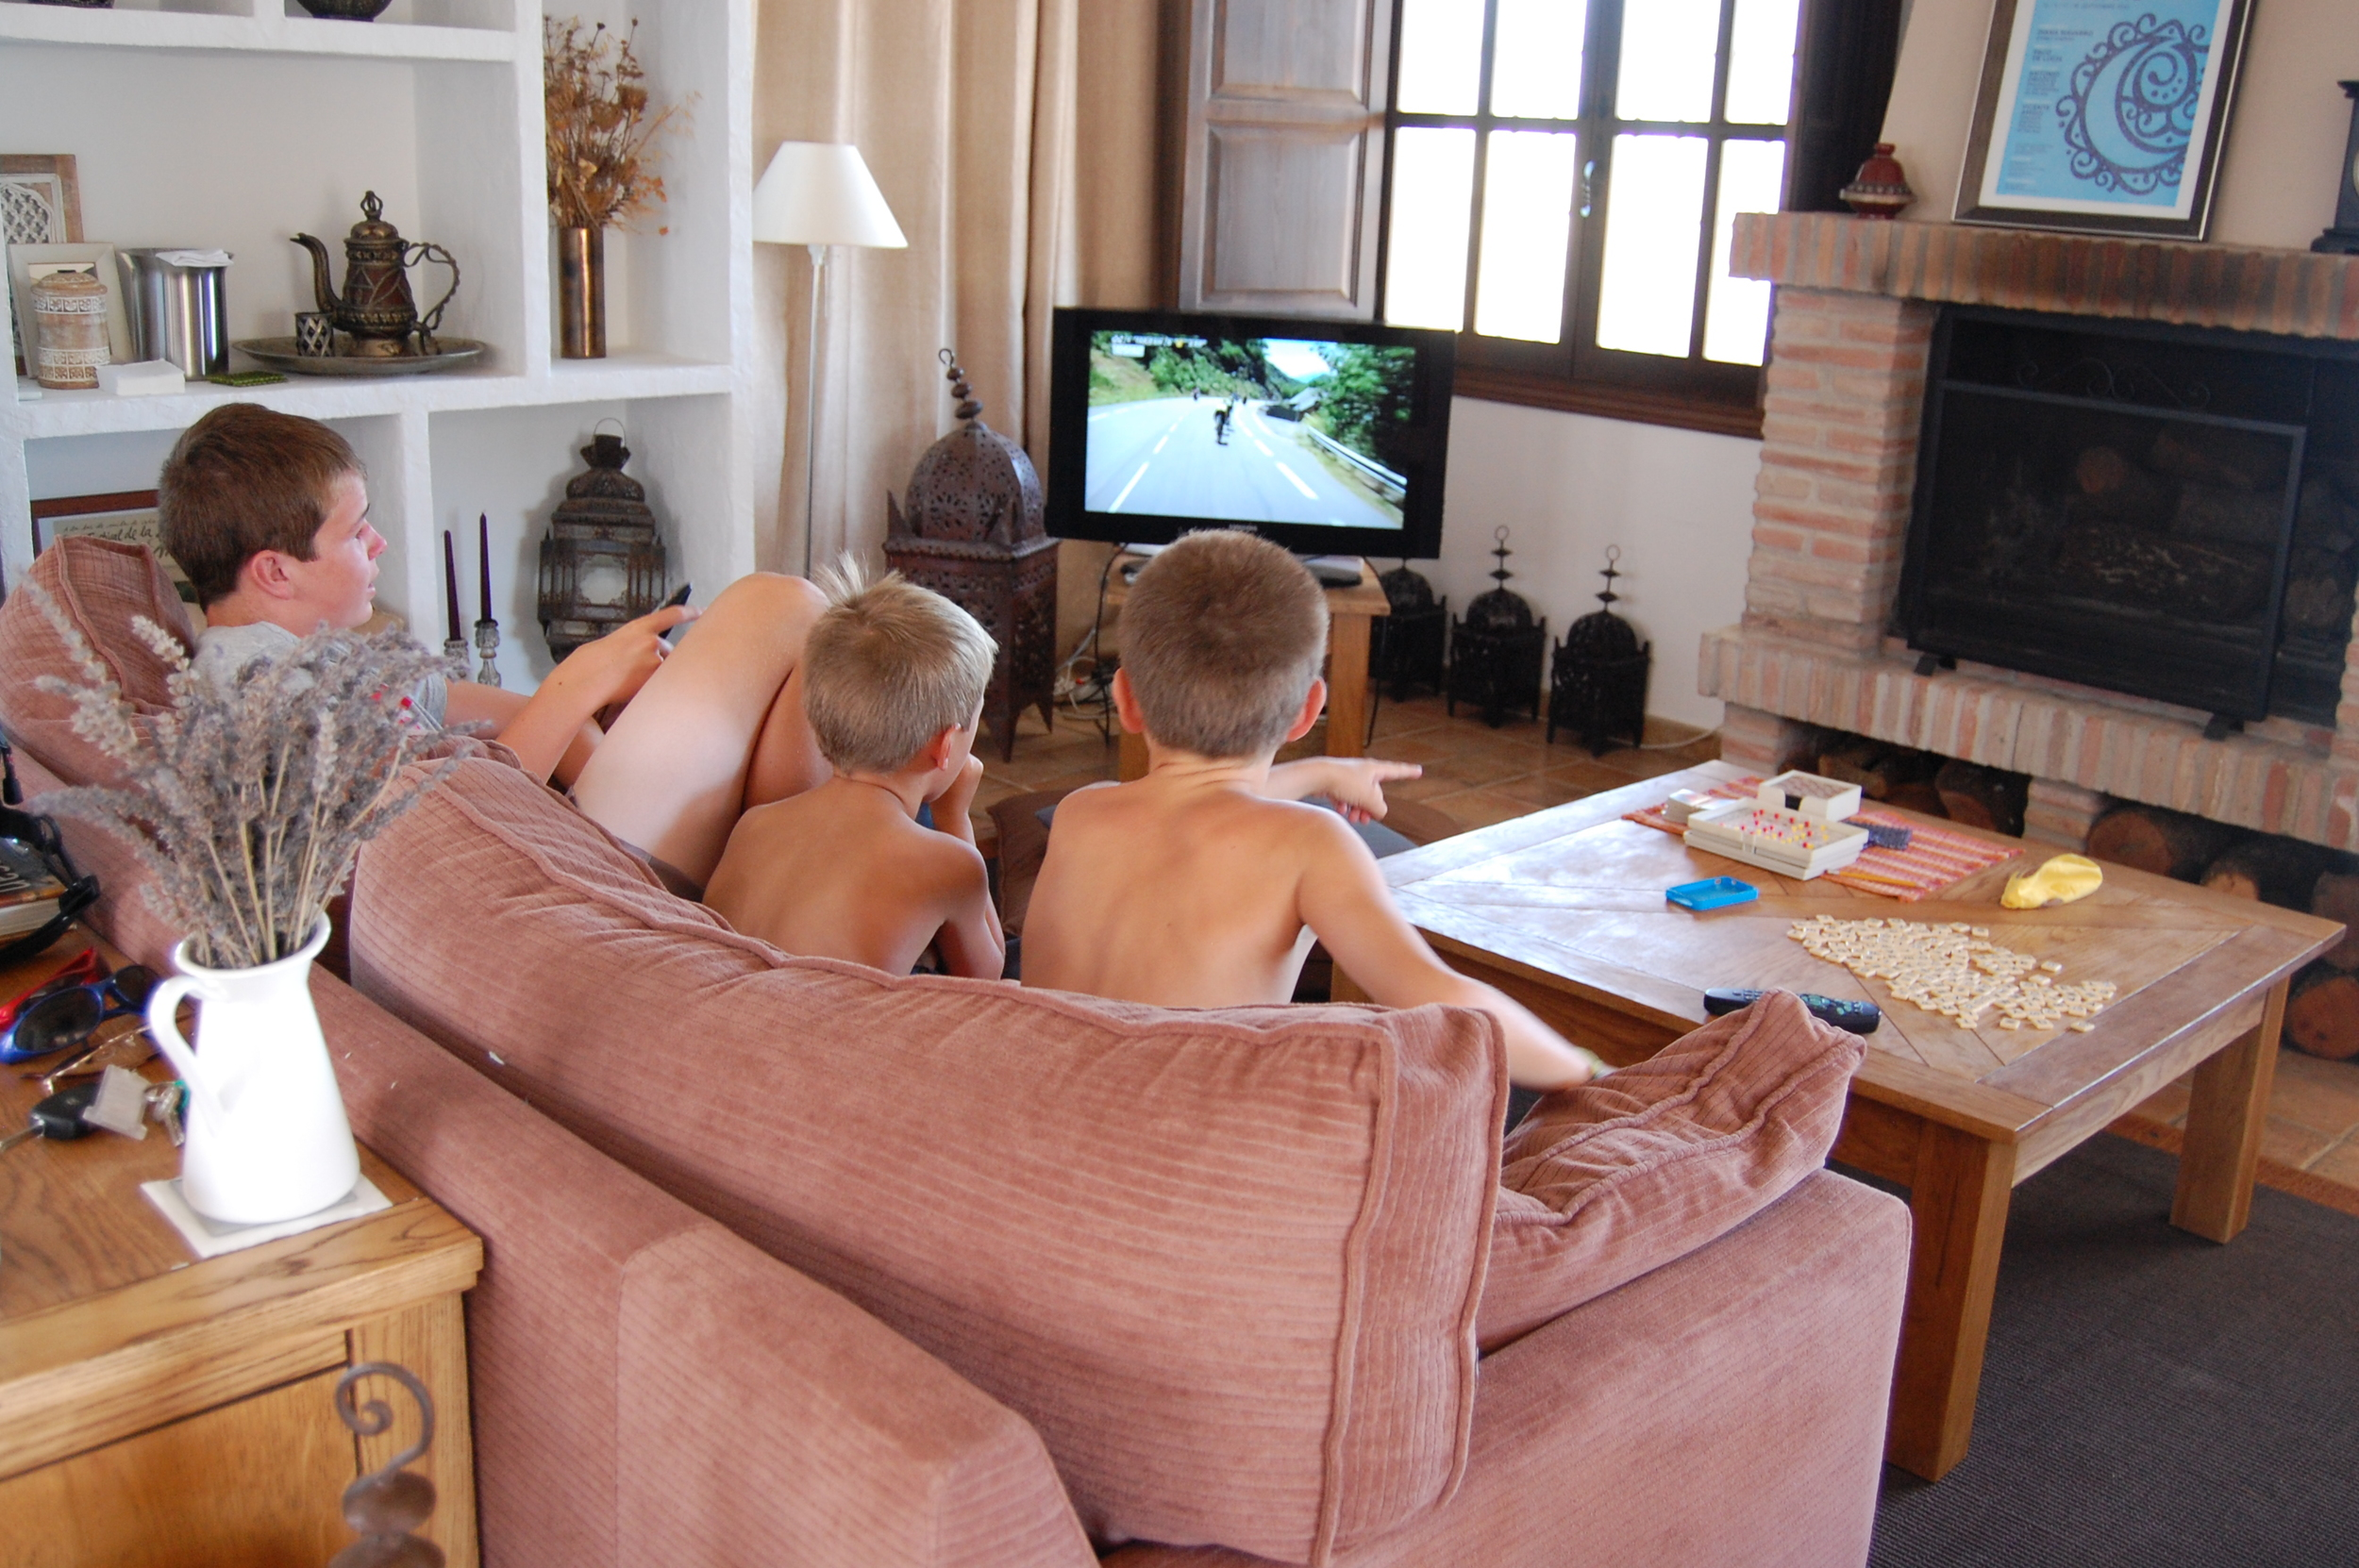 Watching the Tour. Notice games Mommy brought on table.